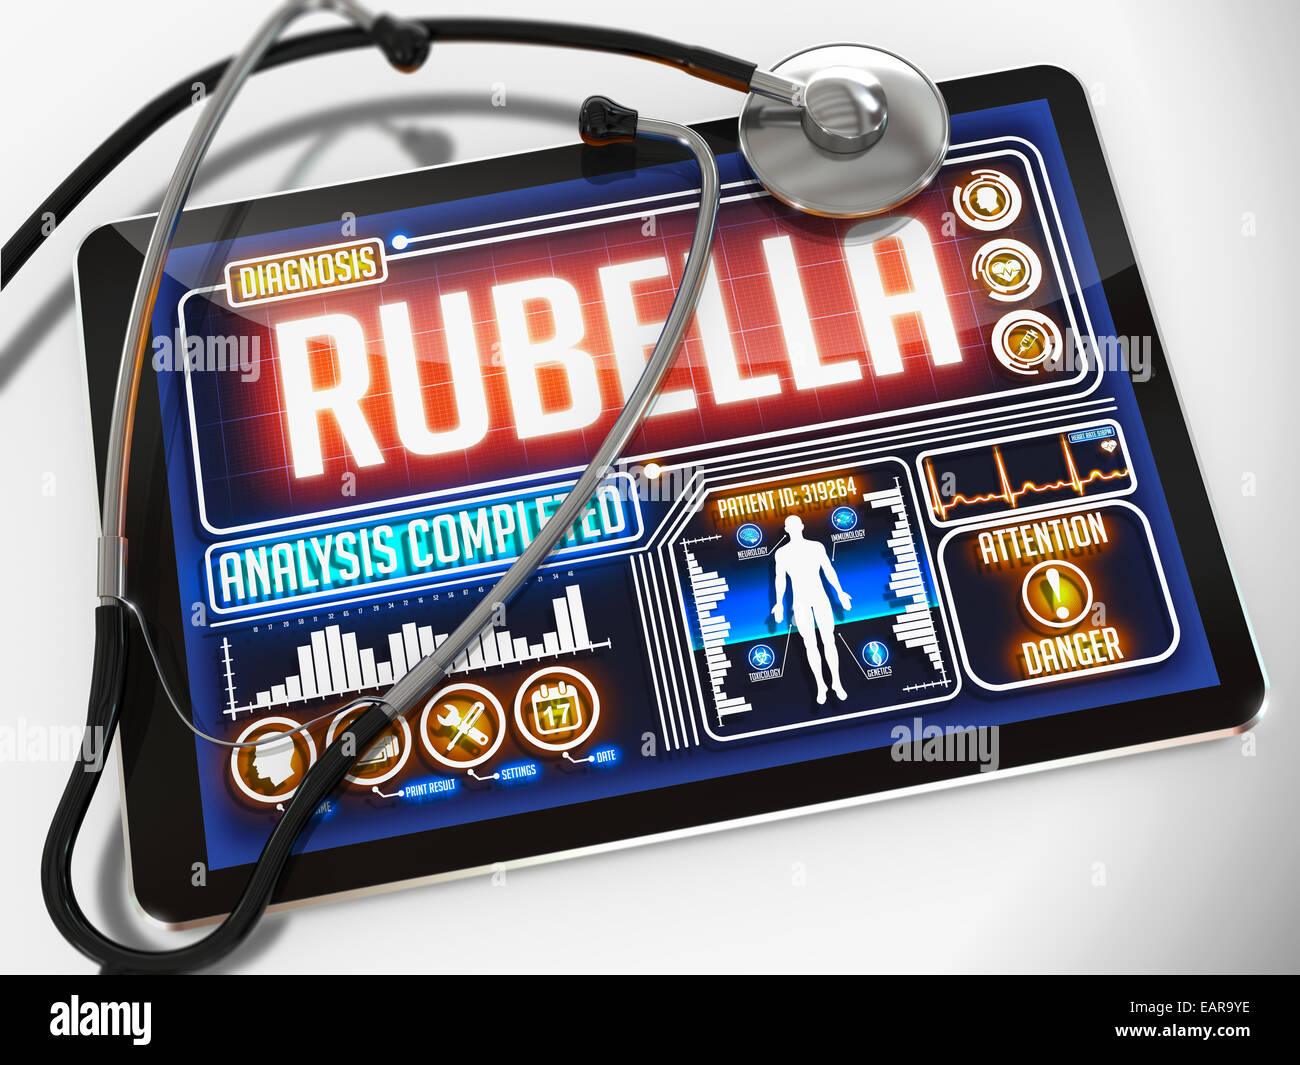 Rubella on the Display of Medical Tablet. - Stock Image